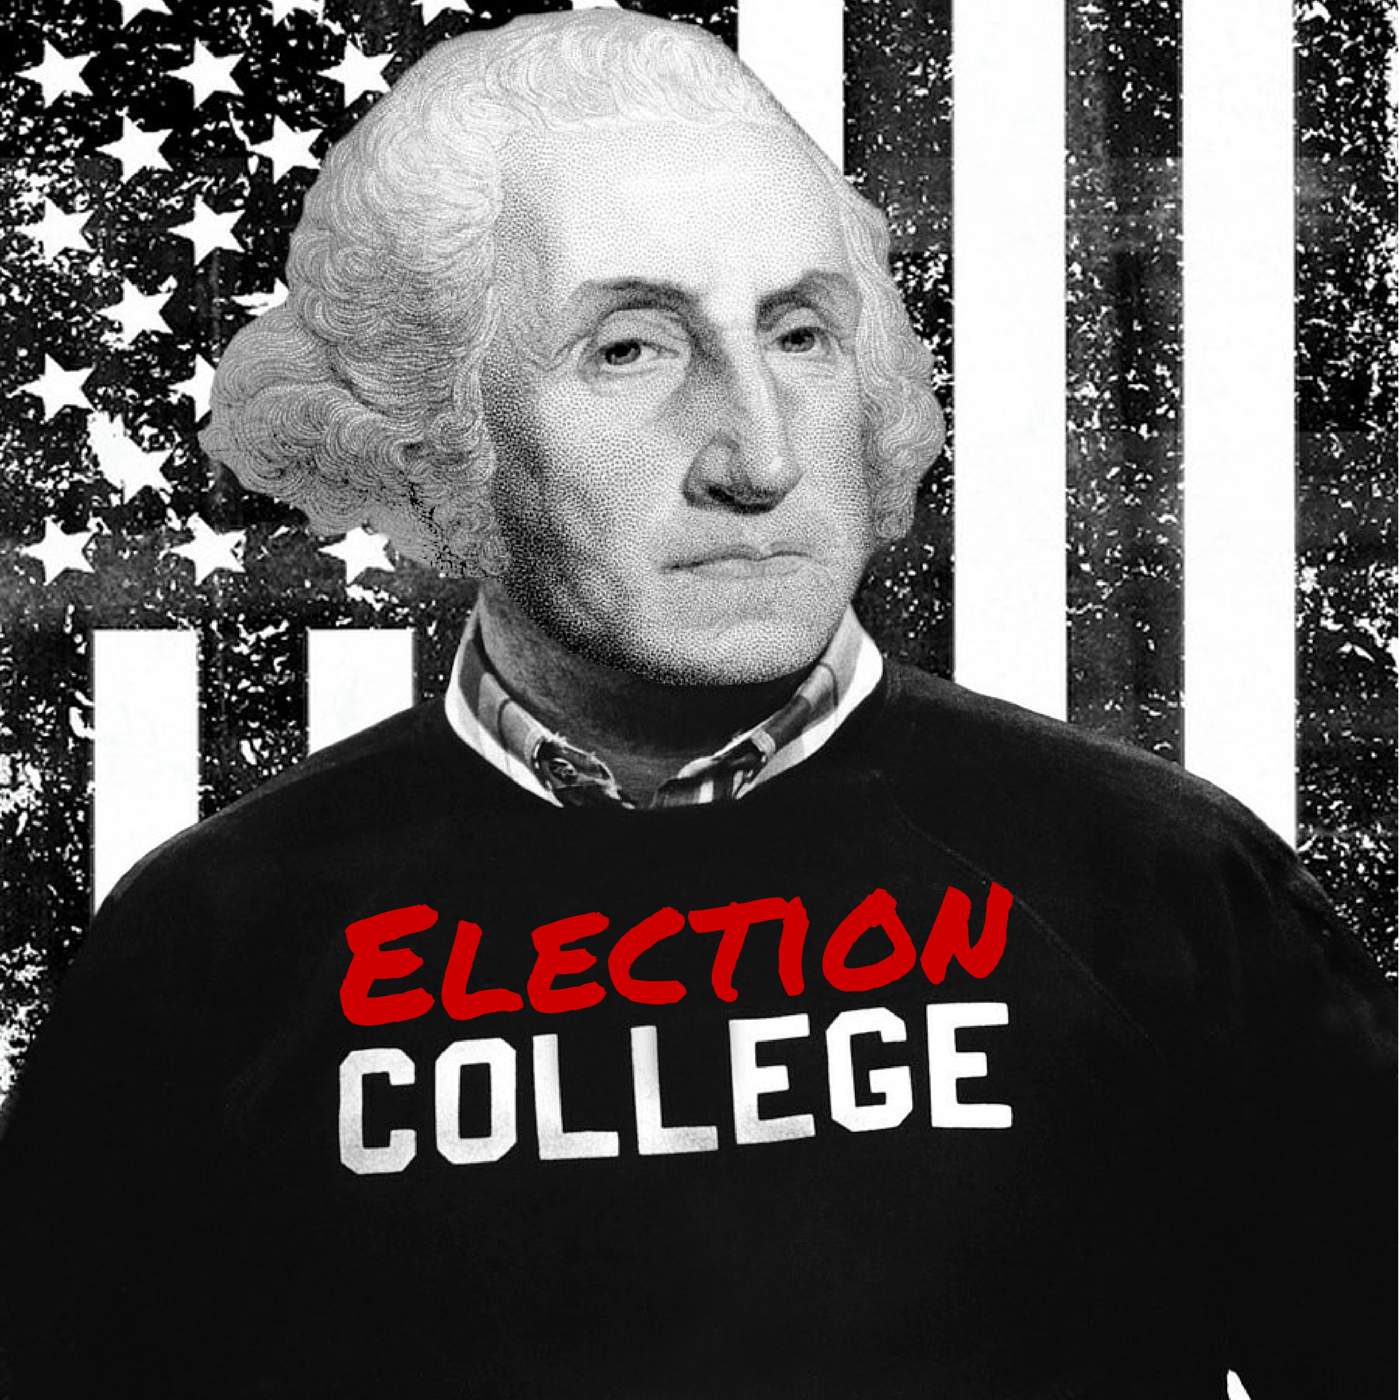 Trump VS Clinton - Election of 2016 | Episode #140 | Election College: United States Presidential Election History